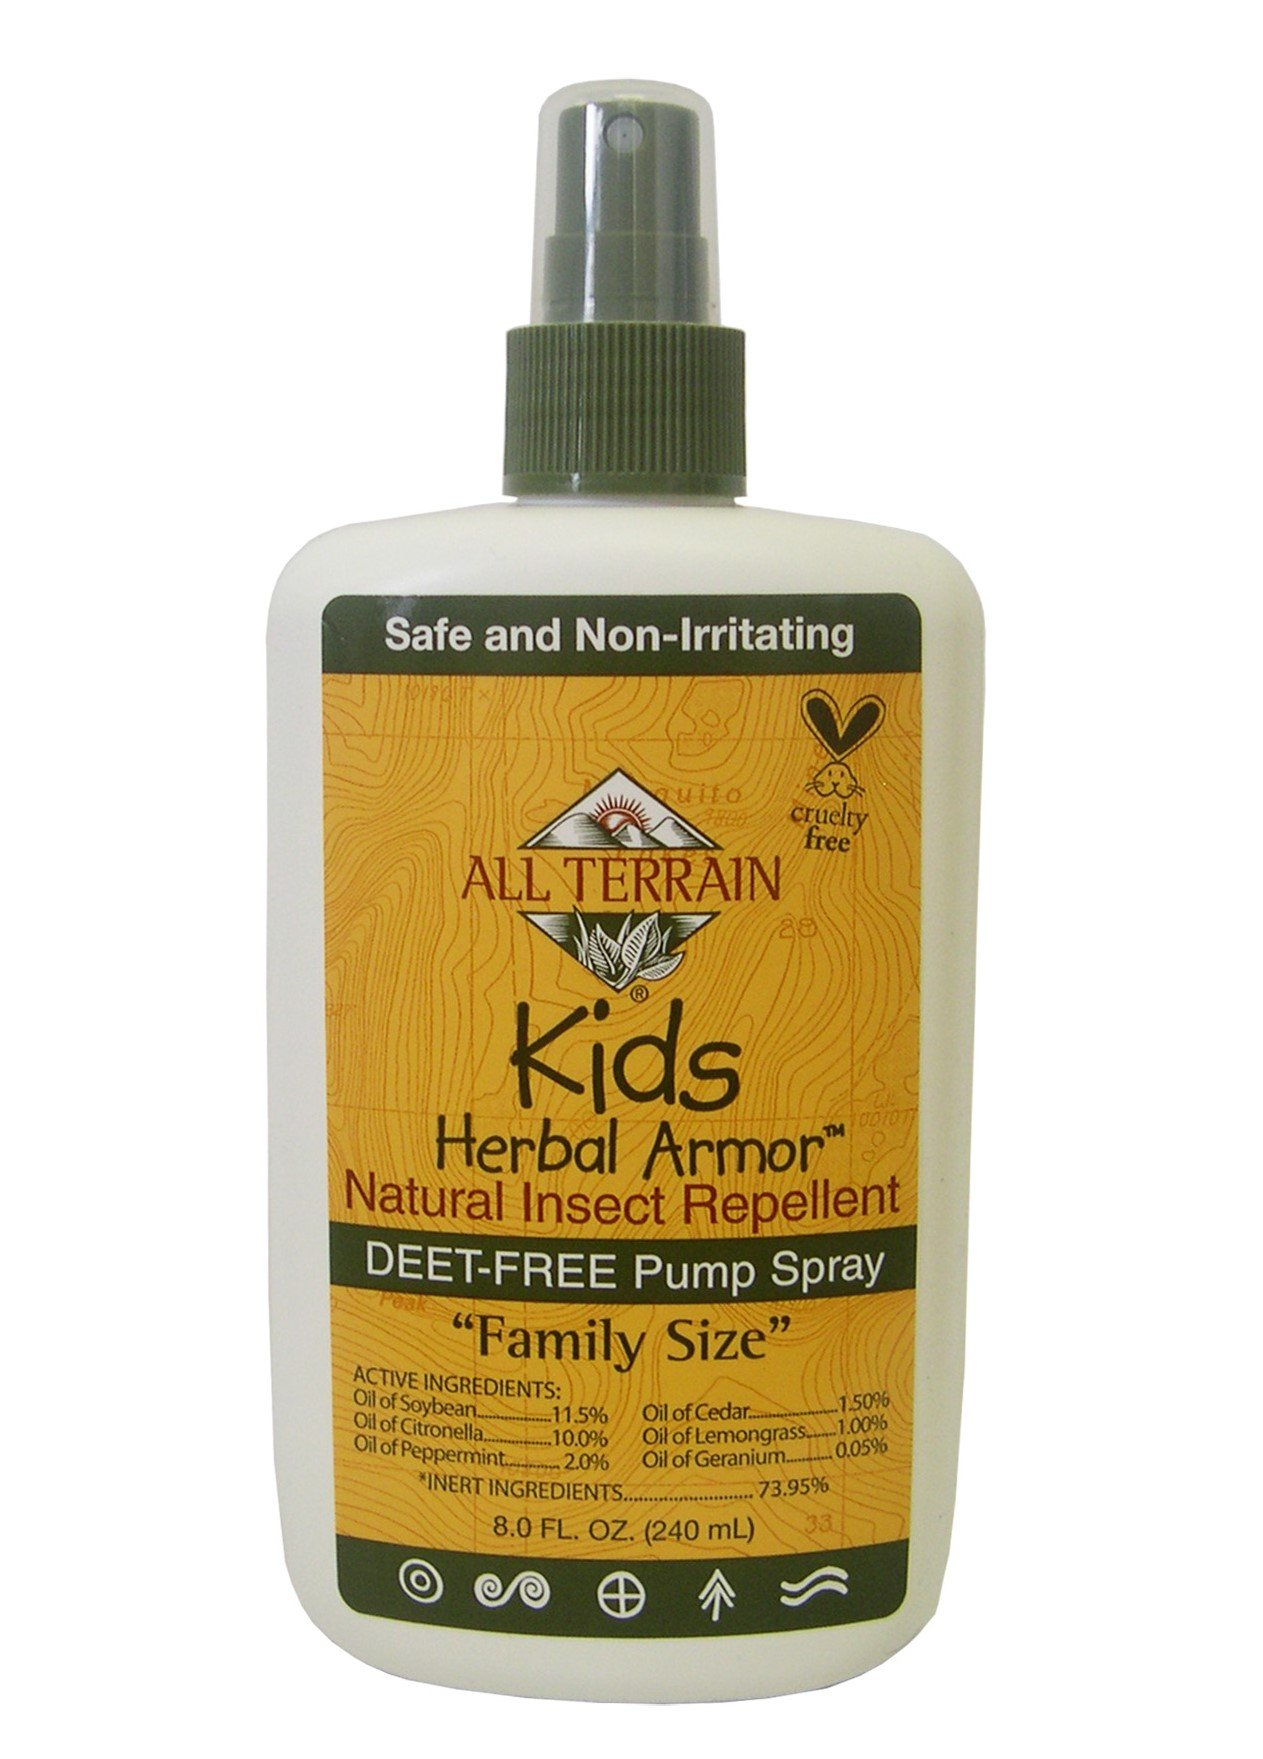 All Terrain Kids DEET-Free Herbal Armor Insect Repellent, 8 Ounce, Safe for Sensitive Skin, Effective Bug Spray Formula with Natural Essential Oils, Great for Travel, Camping, Outdoor Activities